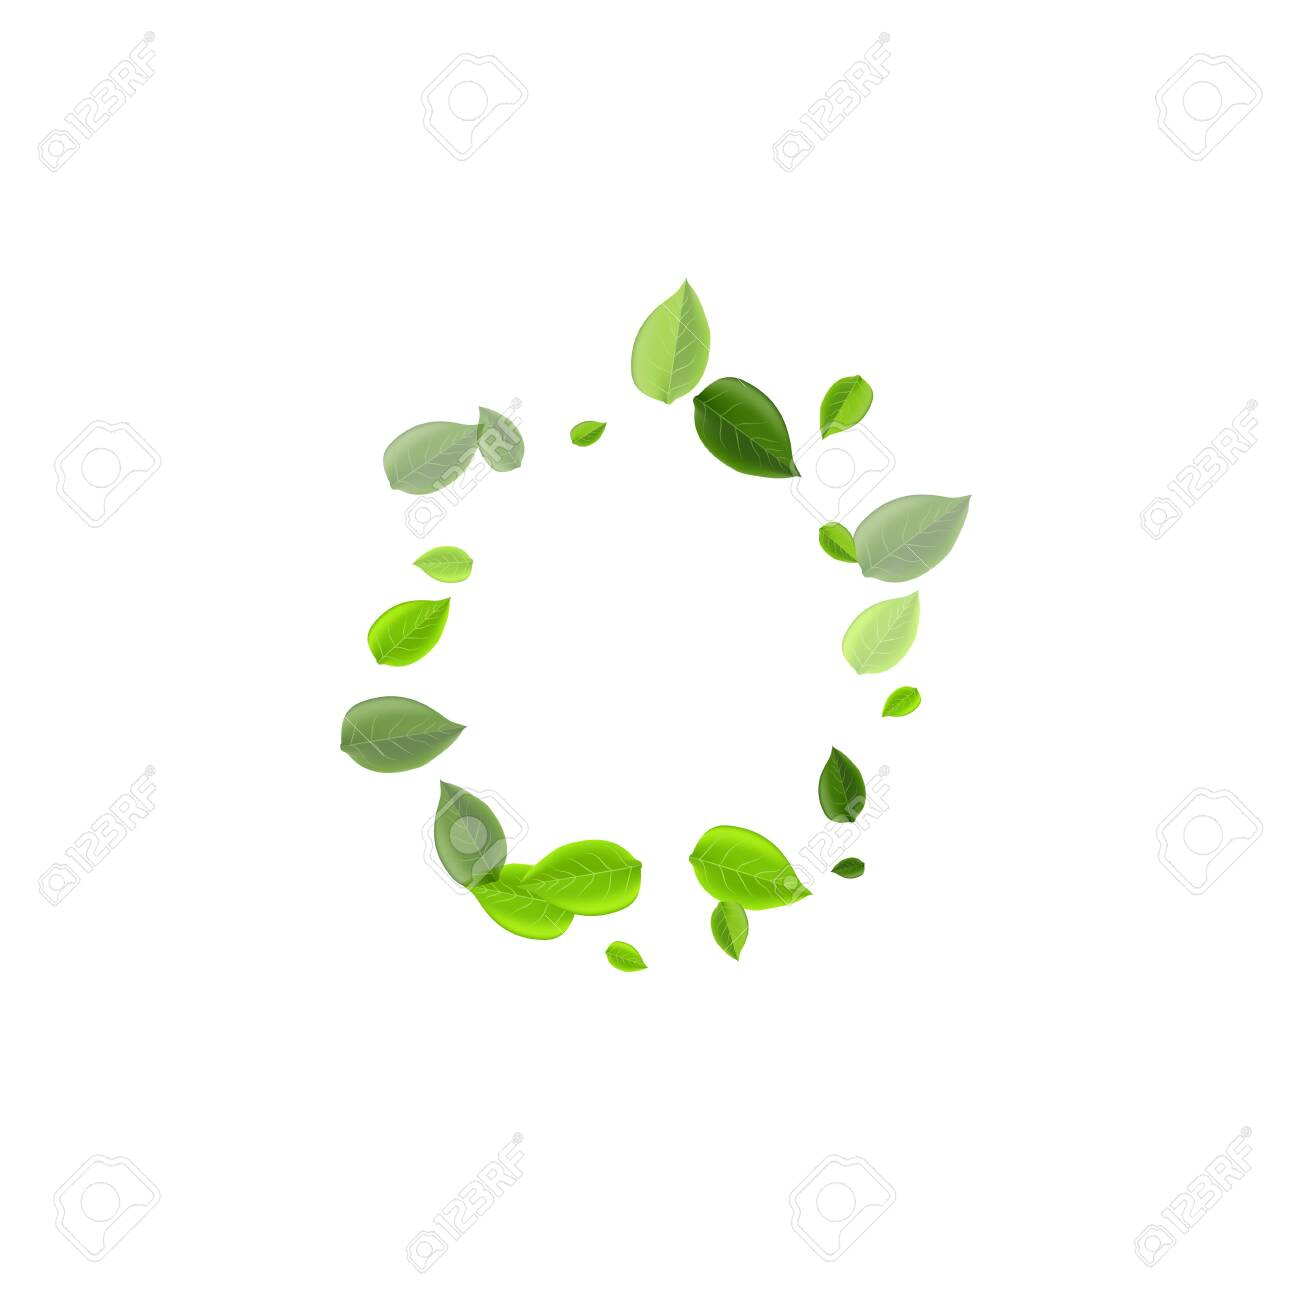 Lime Greens Transparent Vector Pattern. Flying Leaf Branch. Mint Leaves Swirl Illustration. Foliage Abstract Banner. - 148789842